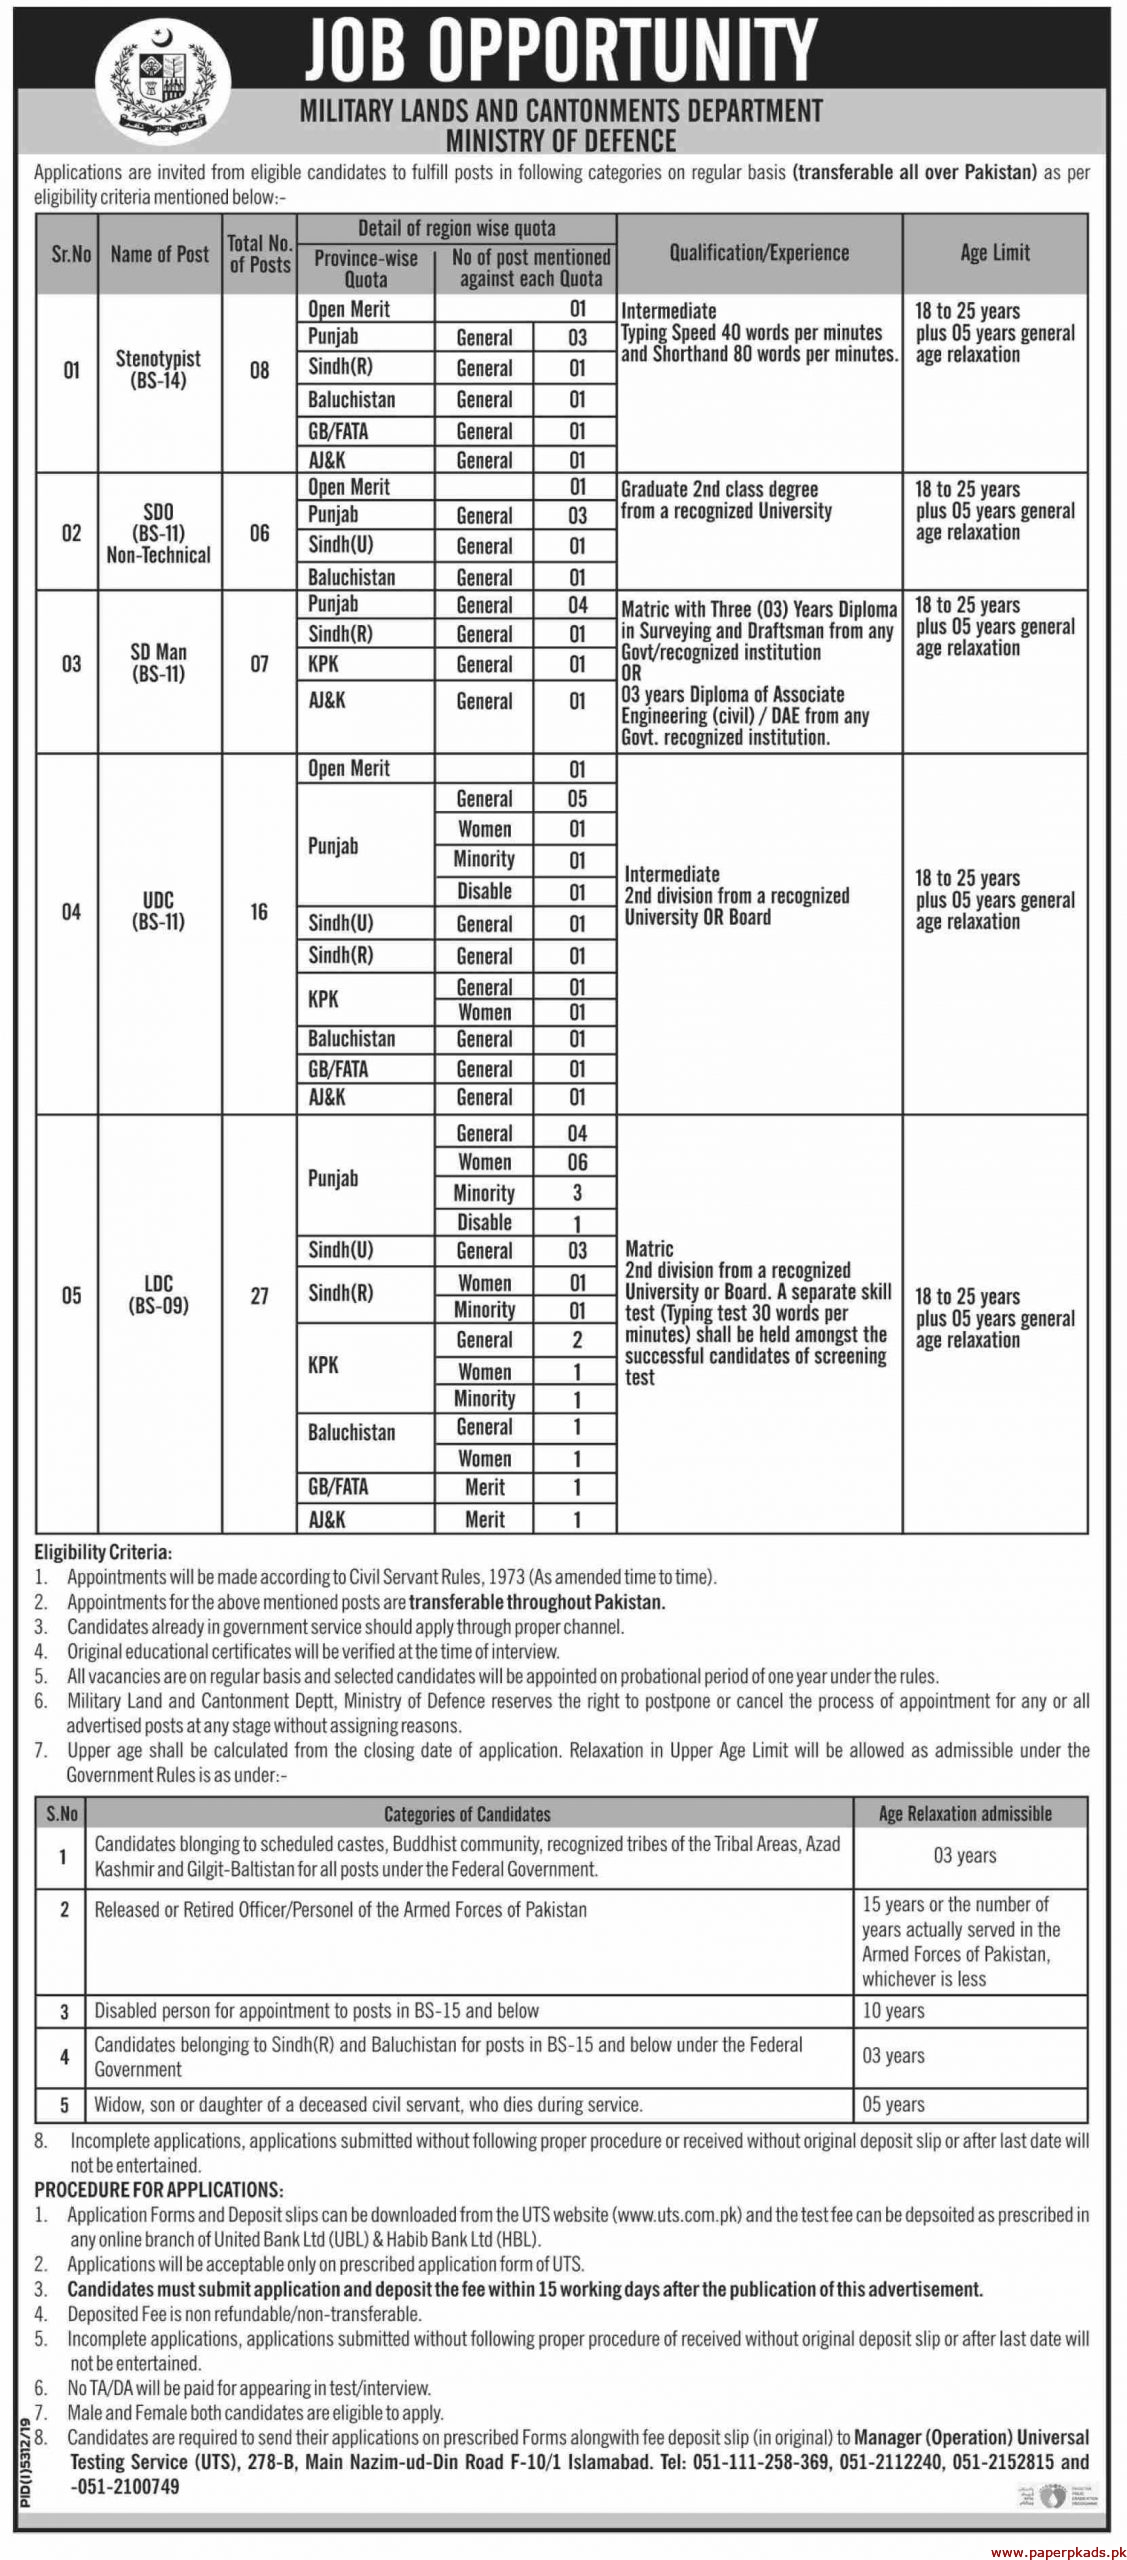 Military Lands and Cantonments Department Ministry of Defence Jobs 2020 Latest